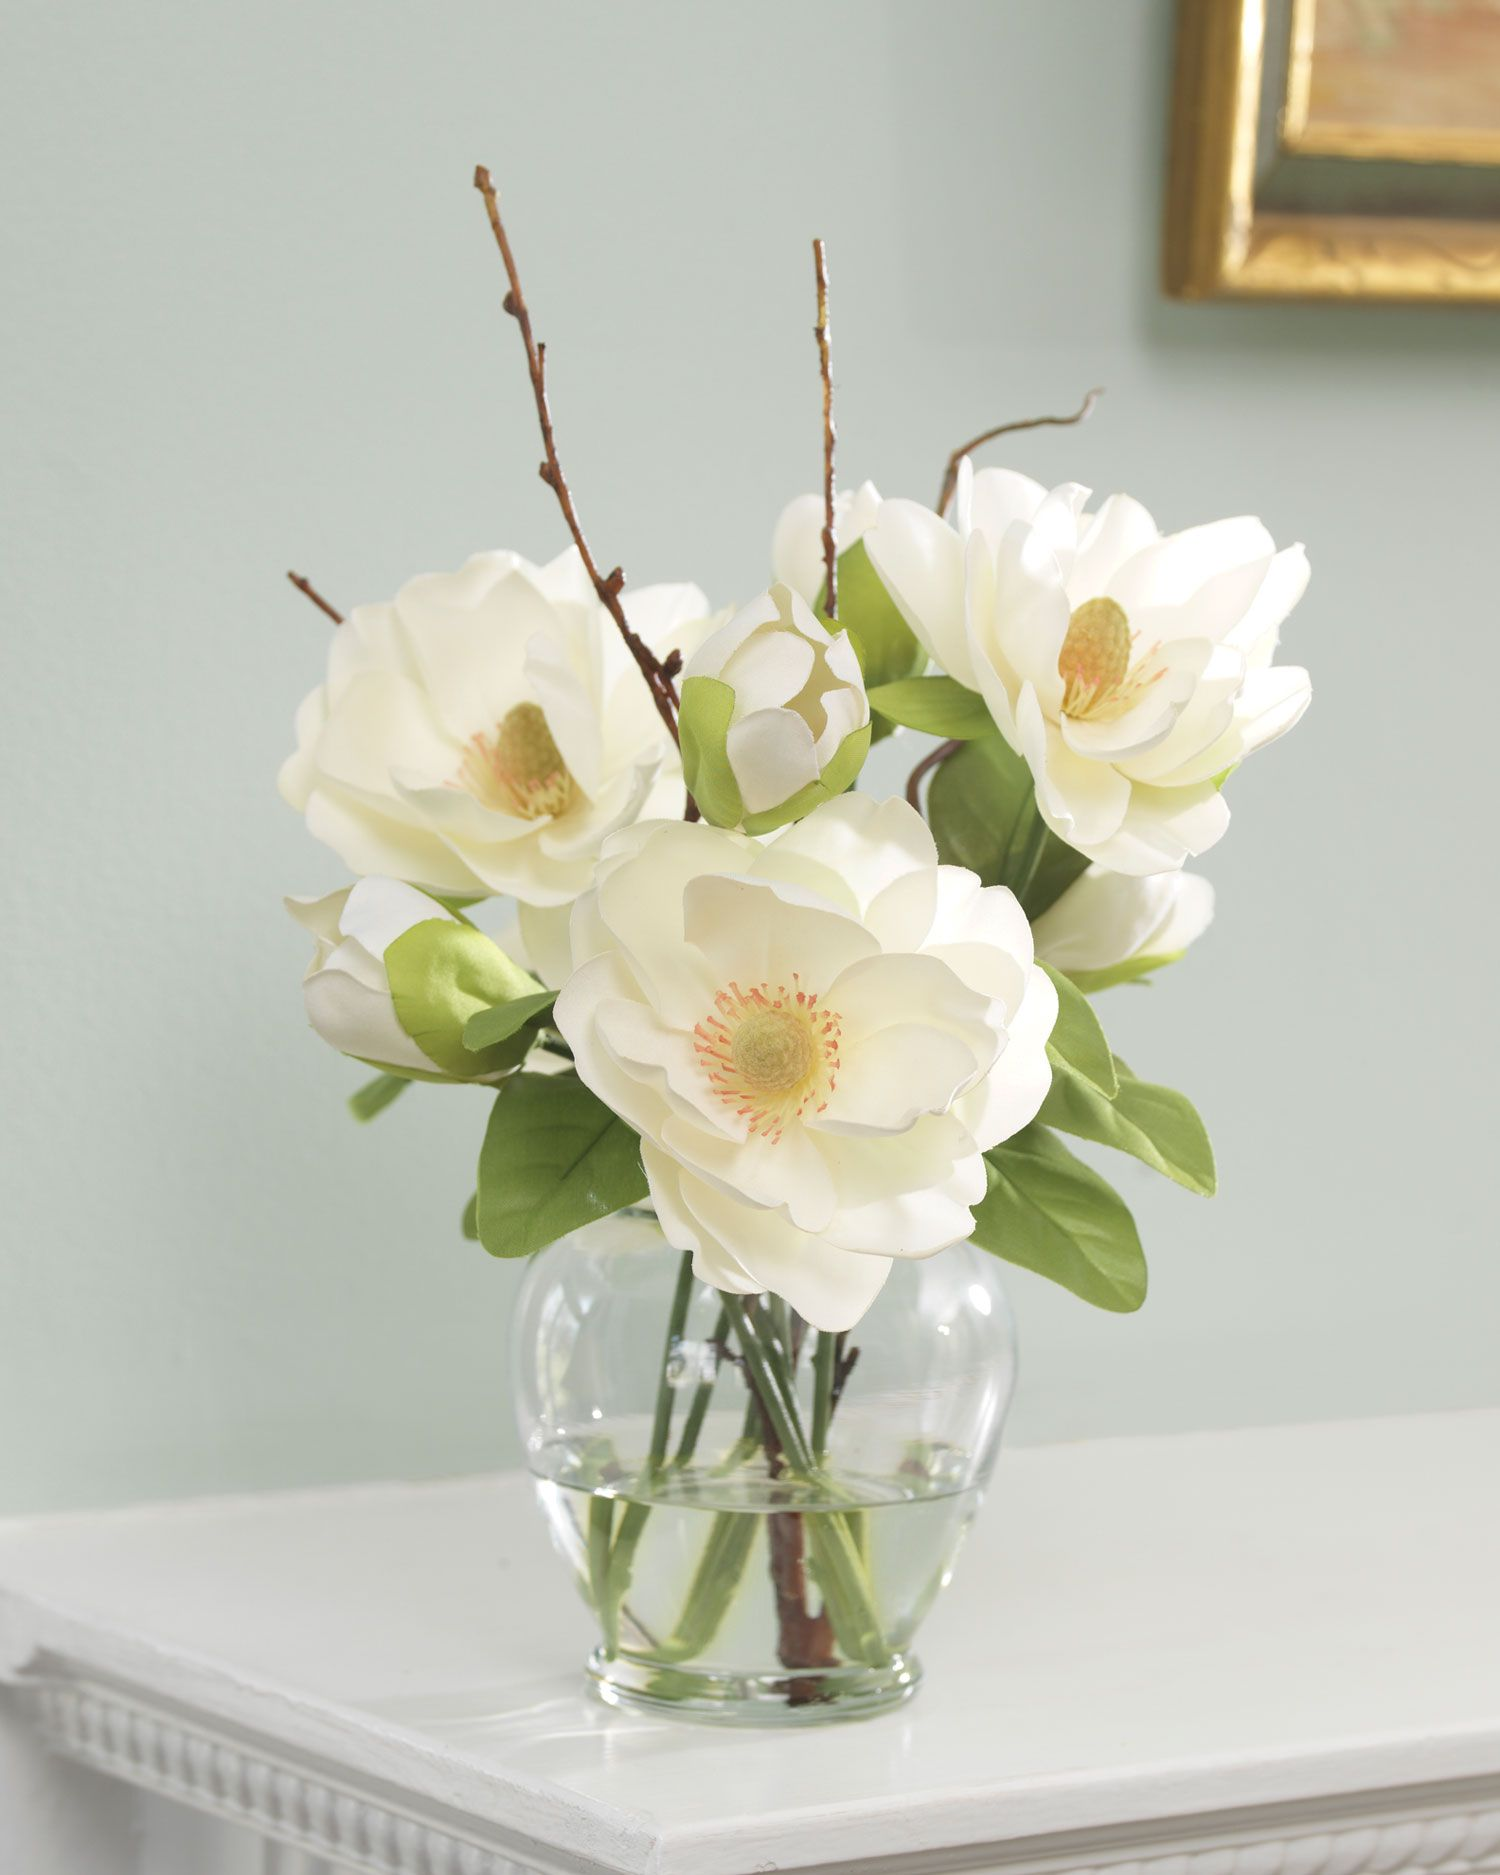 Magnolia Silk Flower Arrangement Artificial Flower Arrangements Faux Flower Arrangements Artificial Floral Arrangements